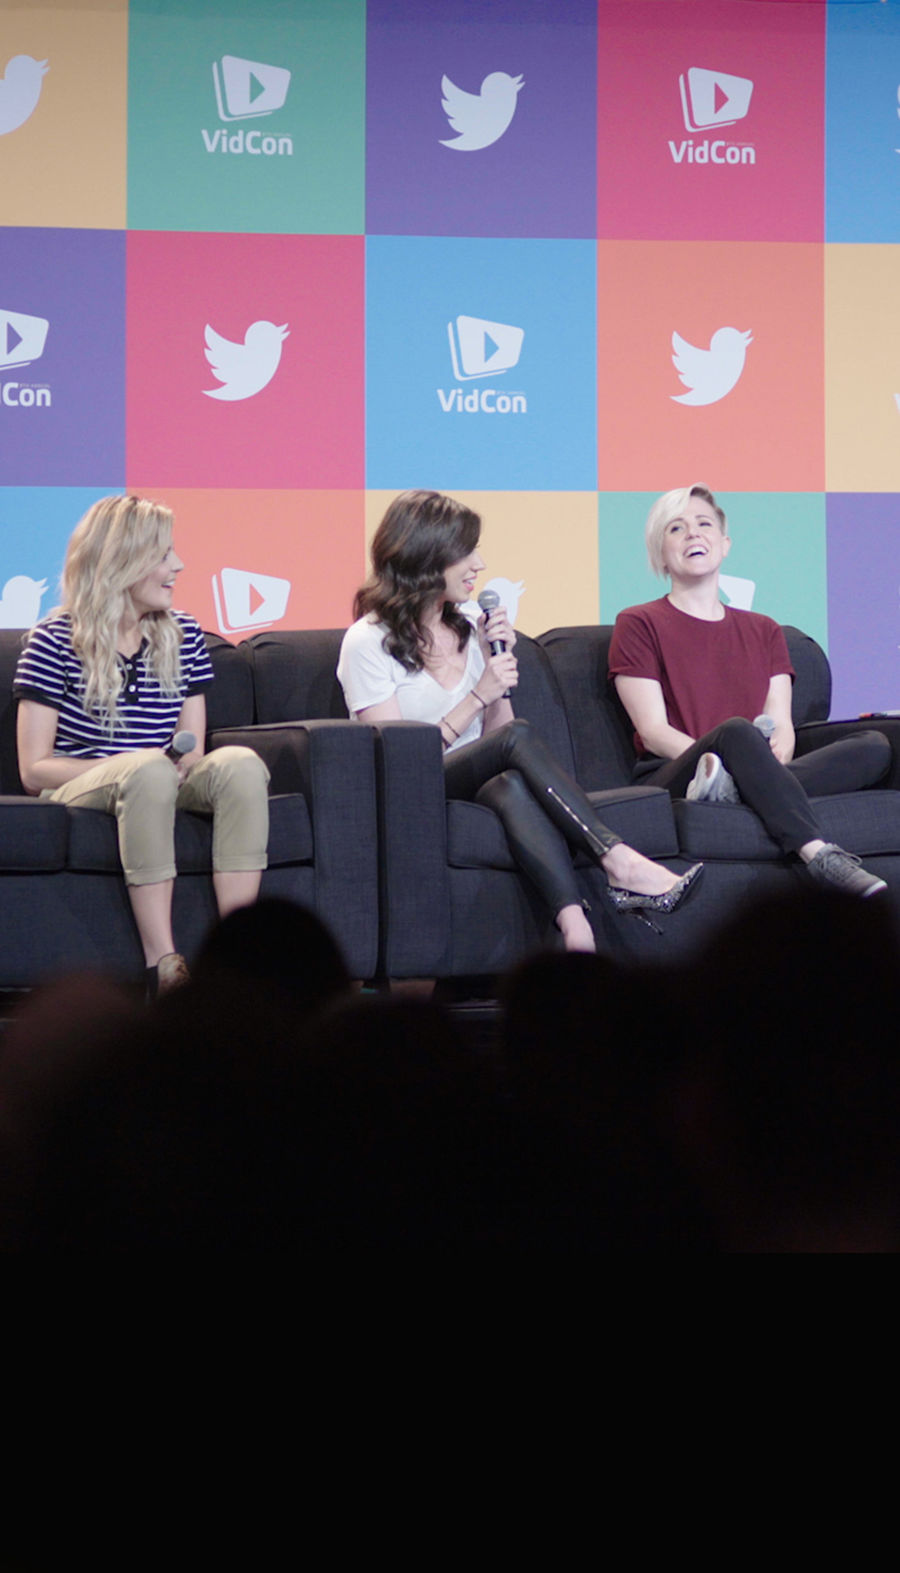 Celebrating Online Community with VidCon